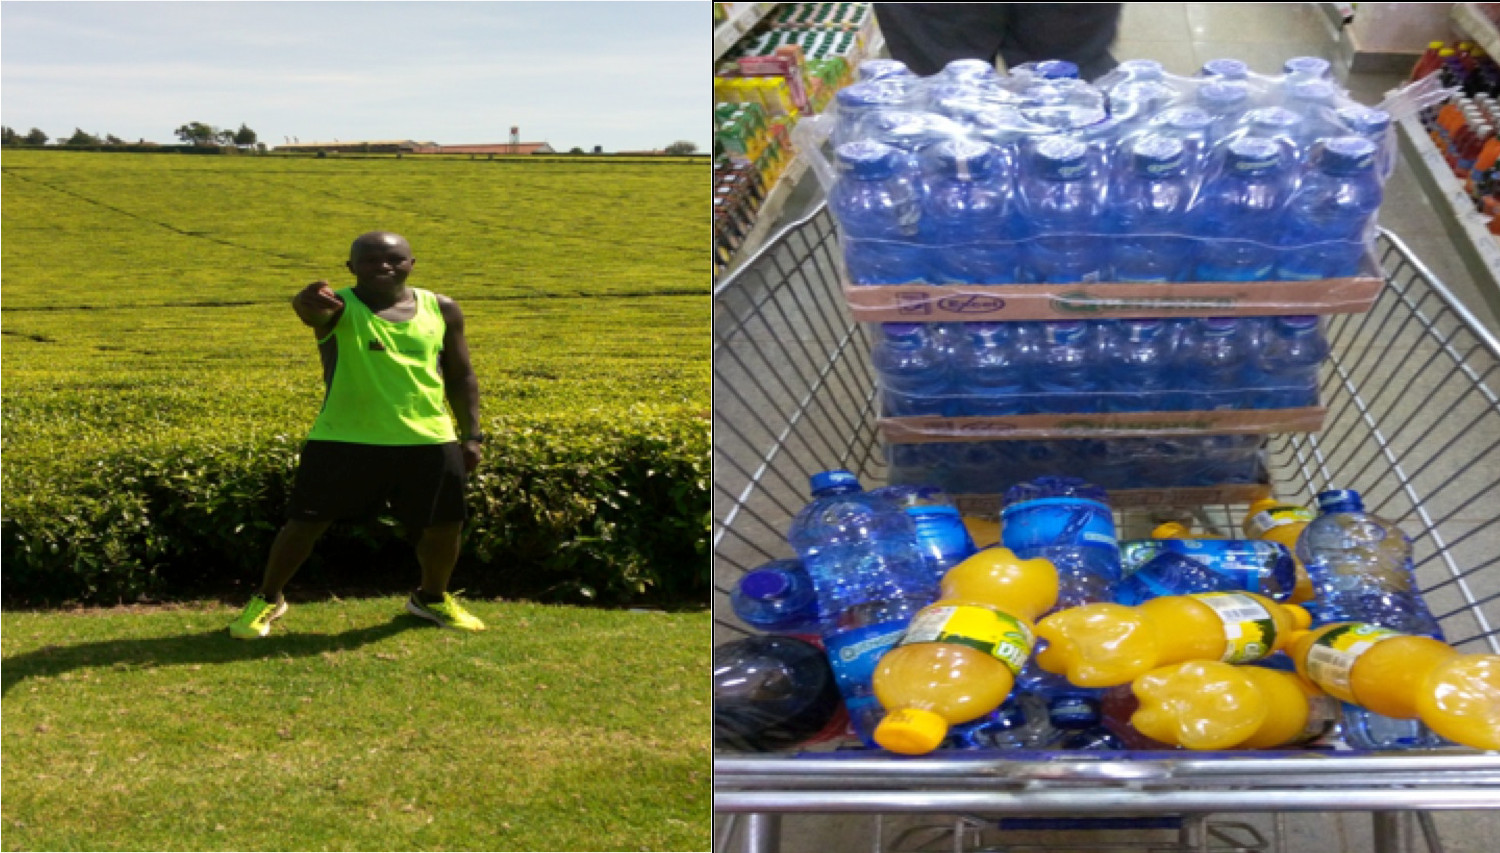 (L) Eden Tea Estate, Kariirana in Limuru, the highest point on my 70 km training run (R) How your shopping basket looks like when headed to Kerio Valley for a 70km Run